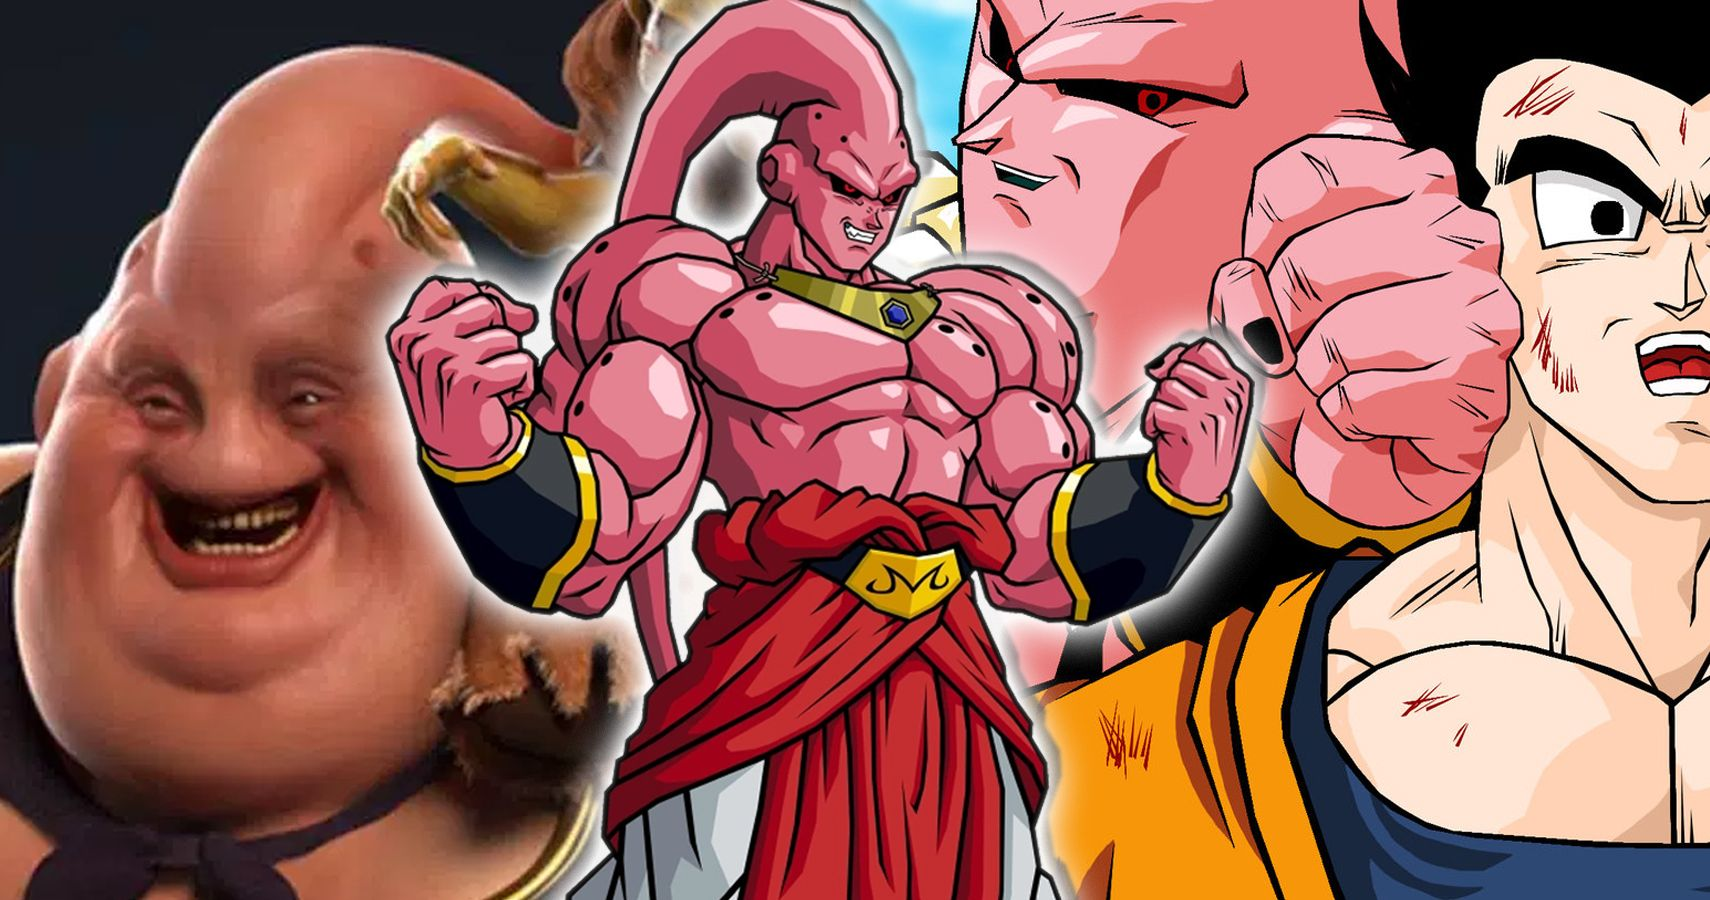 Crazy Things You Never Knew About Buu From Dragon Ball